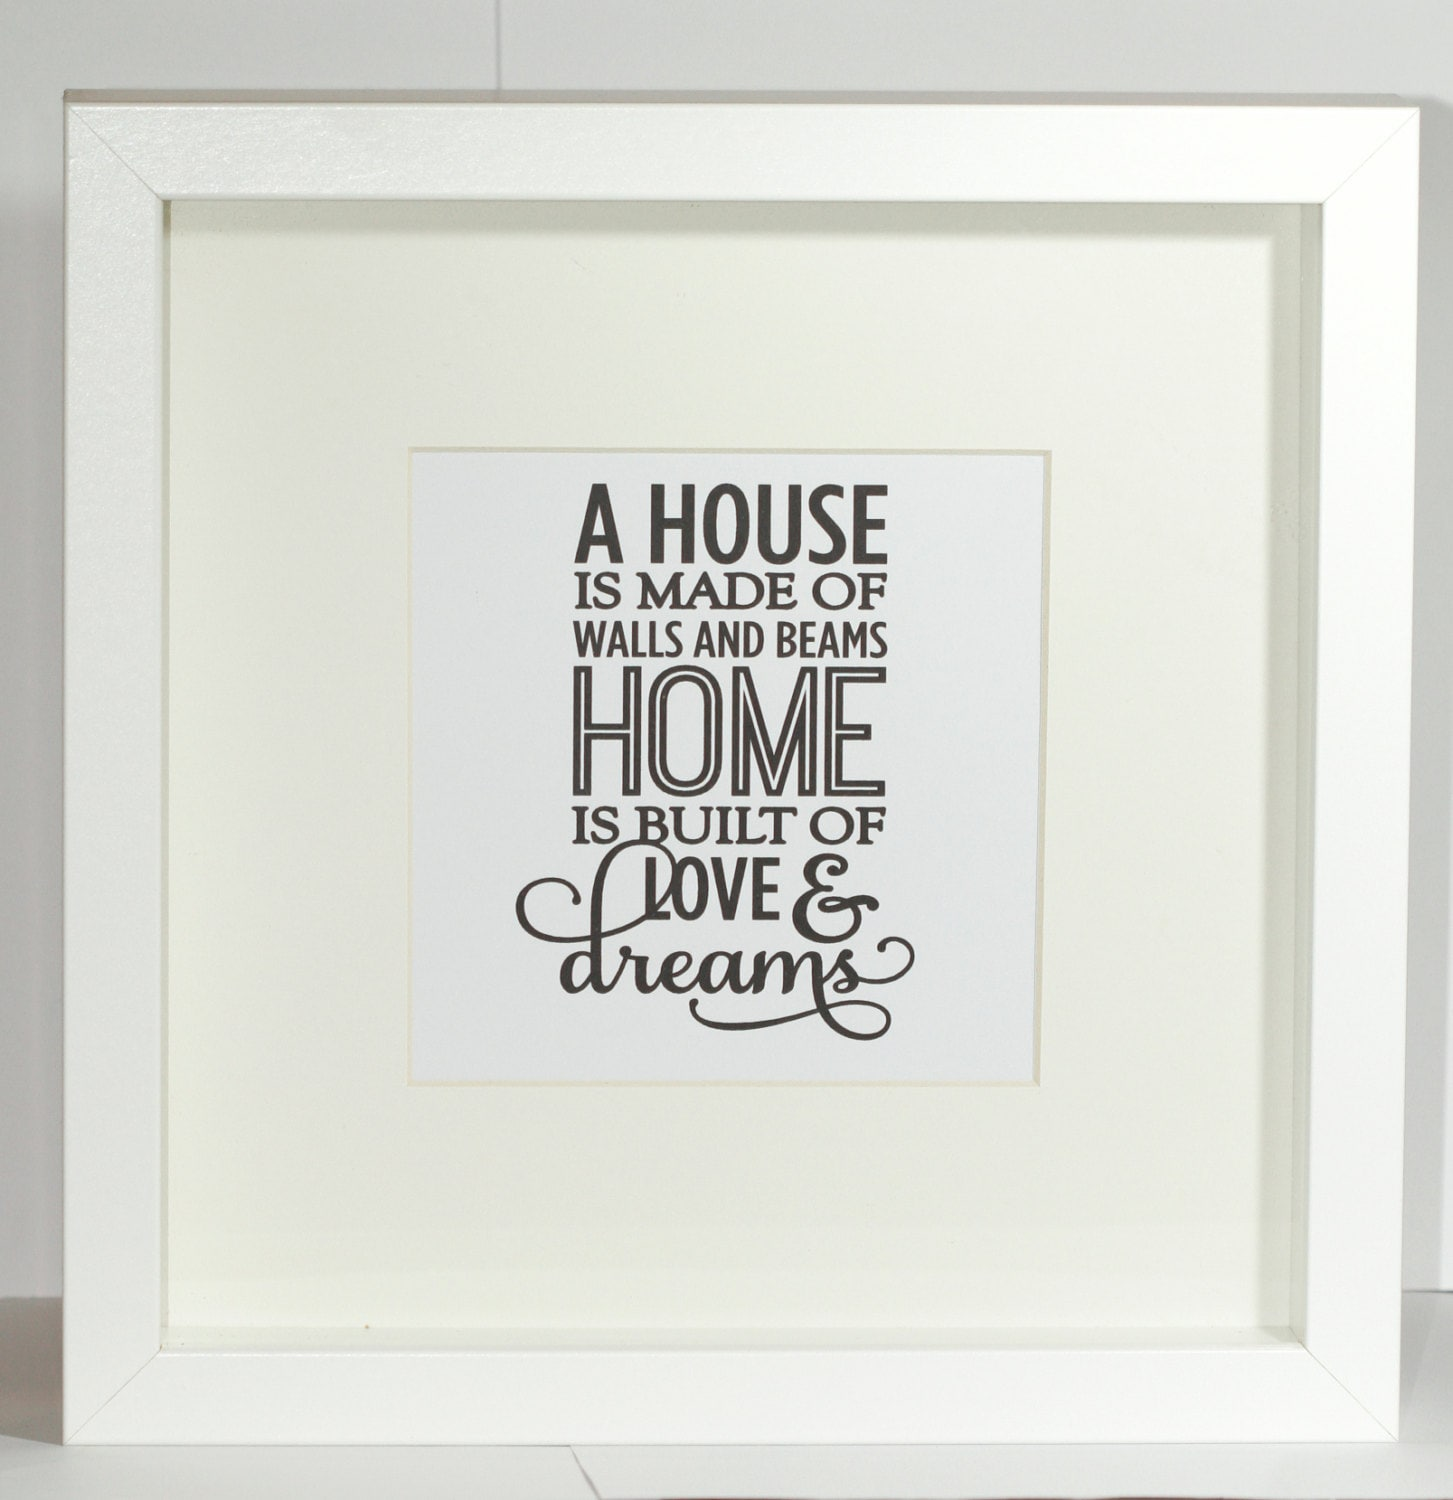 New Home Quotes Framed Quote Printnew Home Gift Framemoving Gifthouse